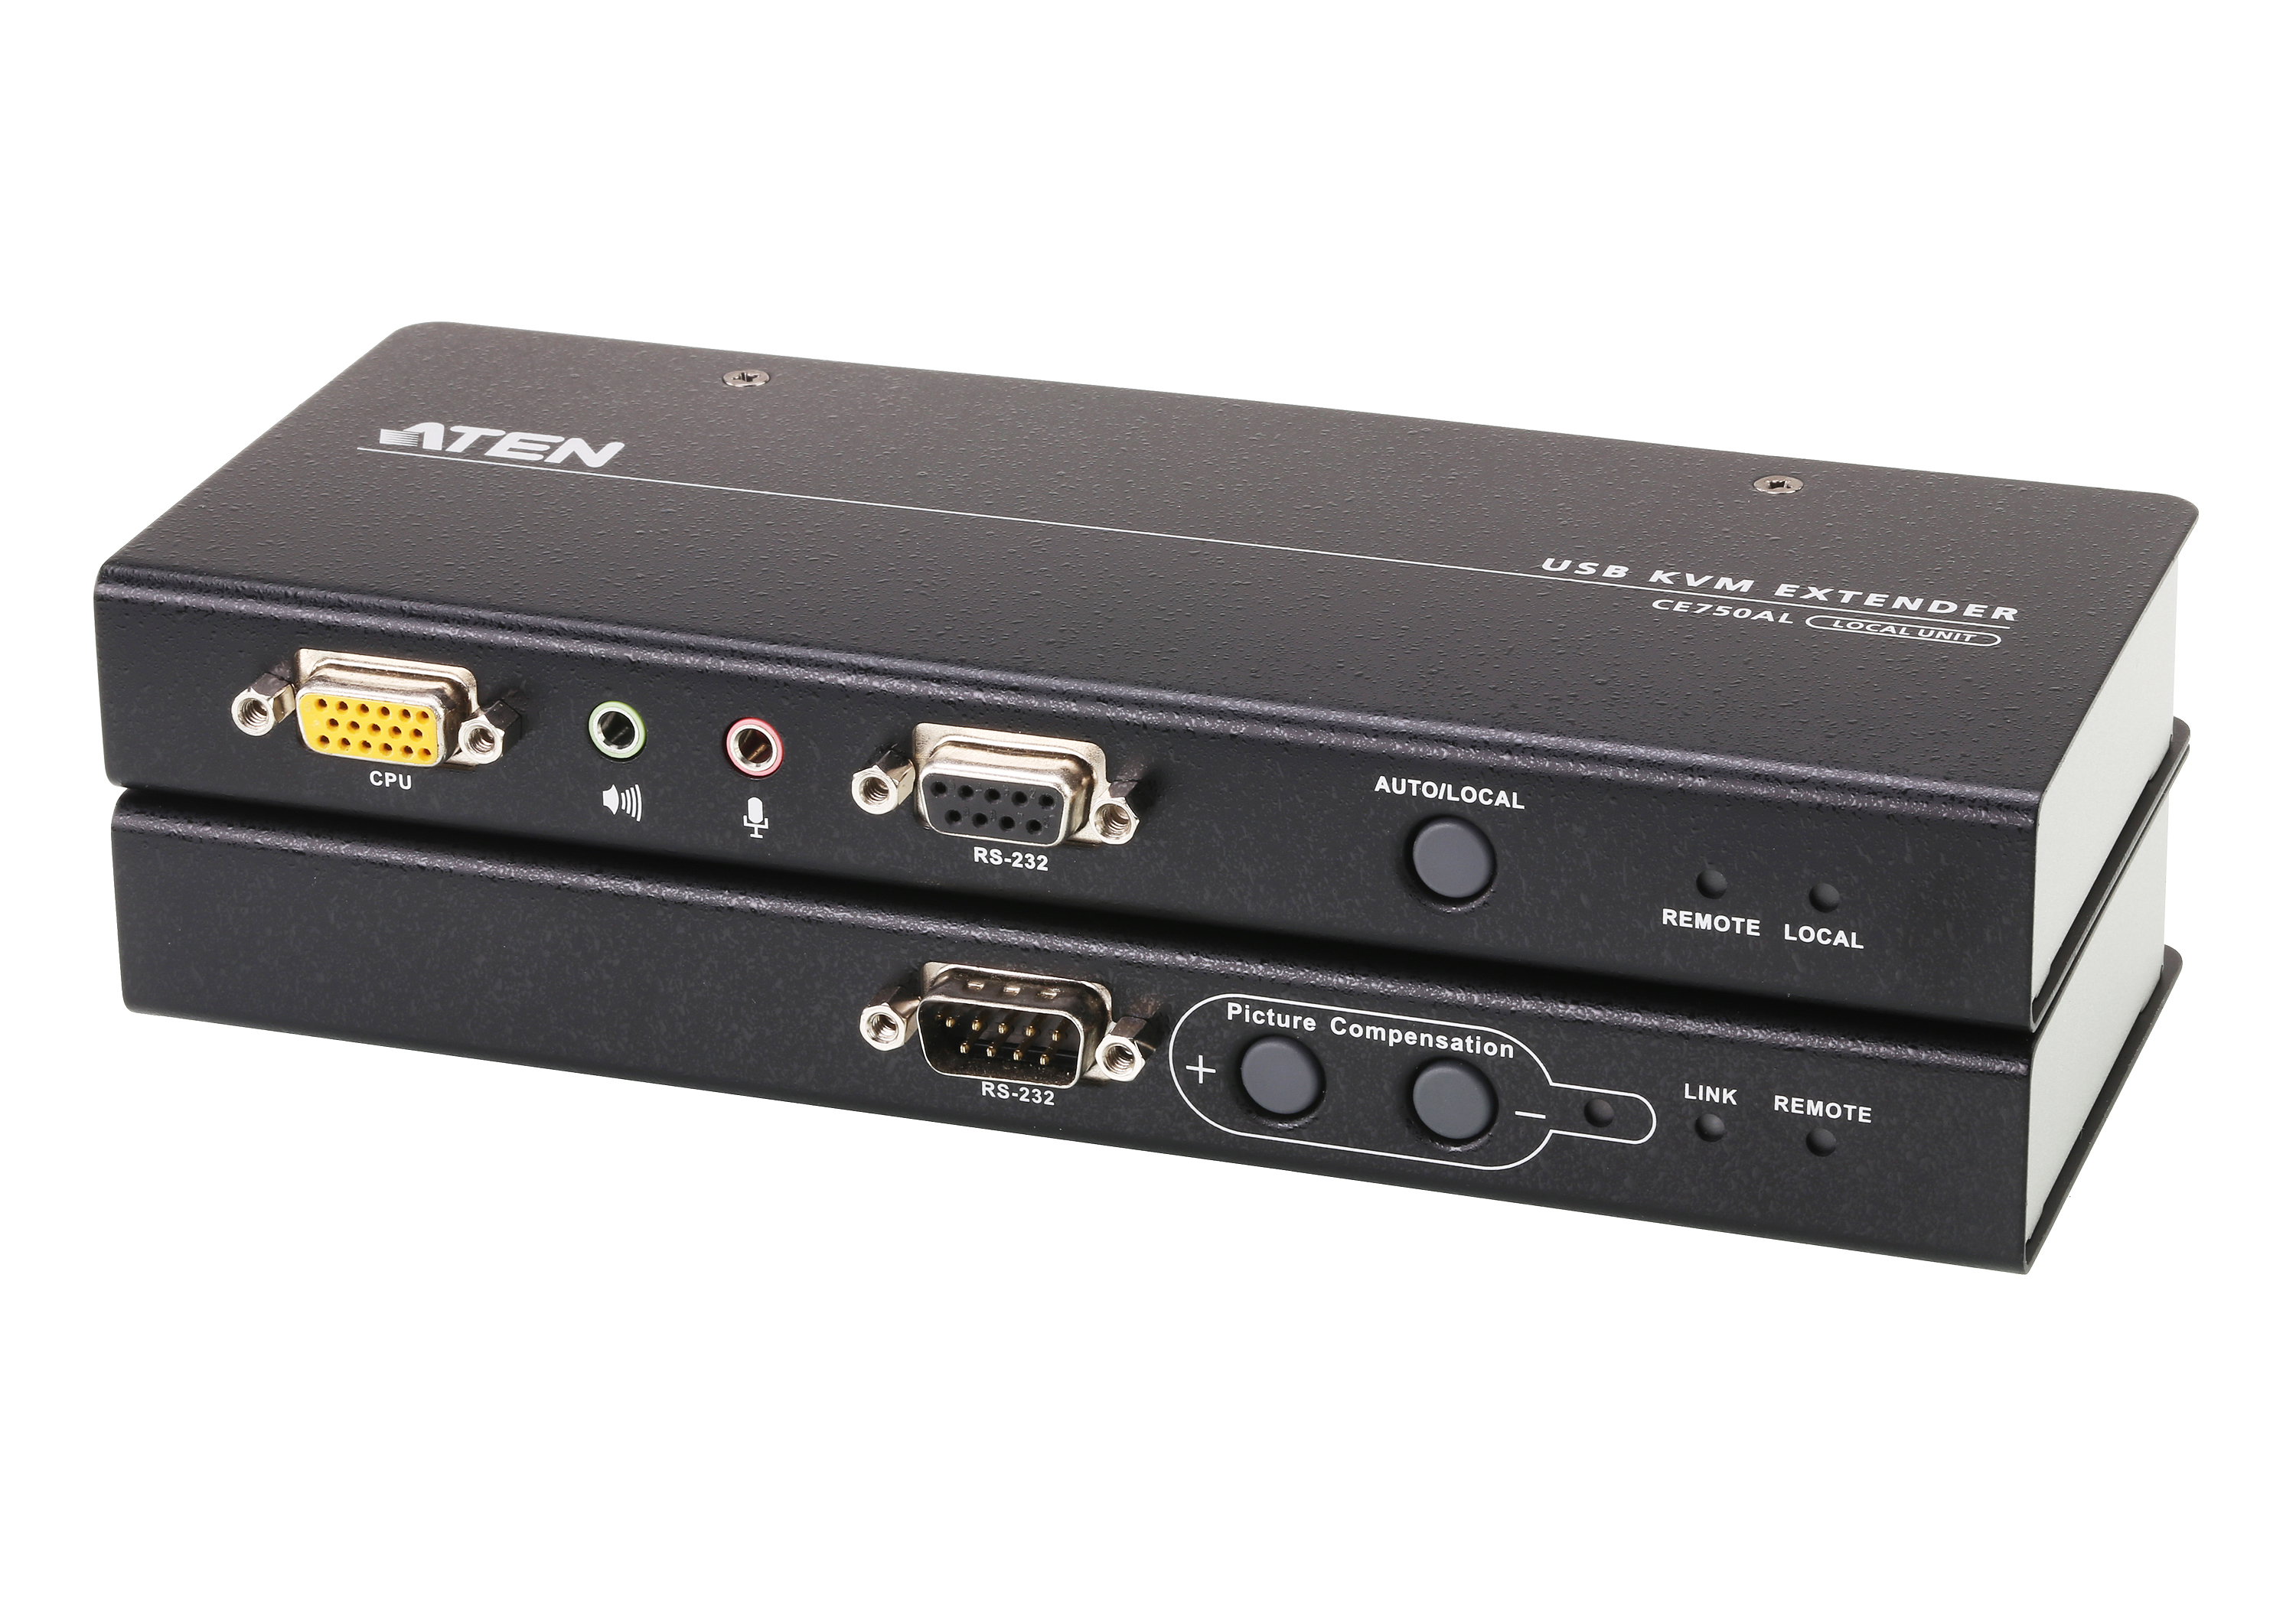 Extensor KVM USB VGA/audio Cat 5 (1280 x 1024 a 200 m)-1